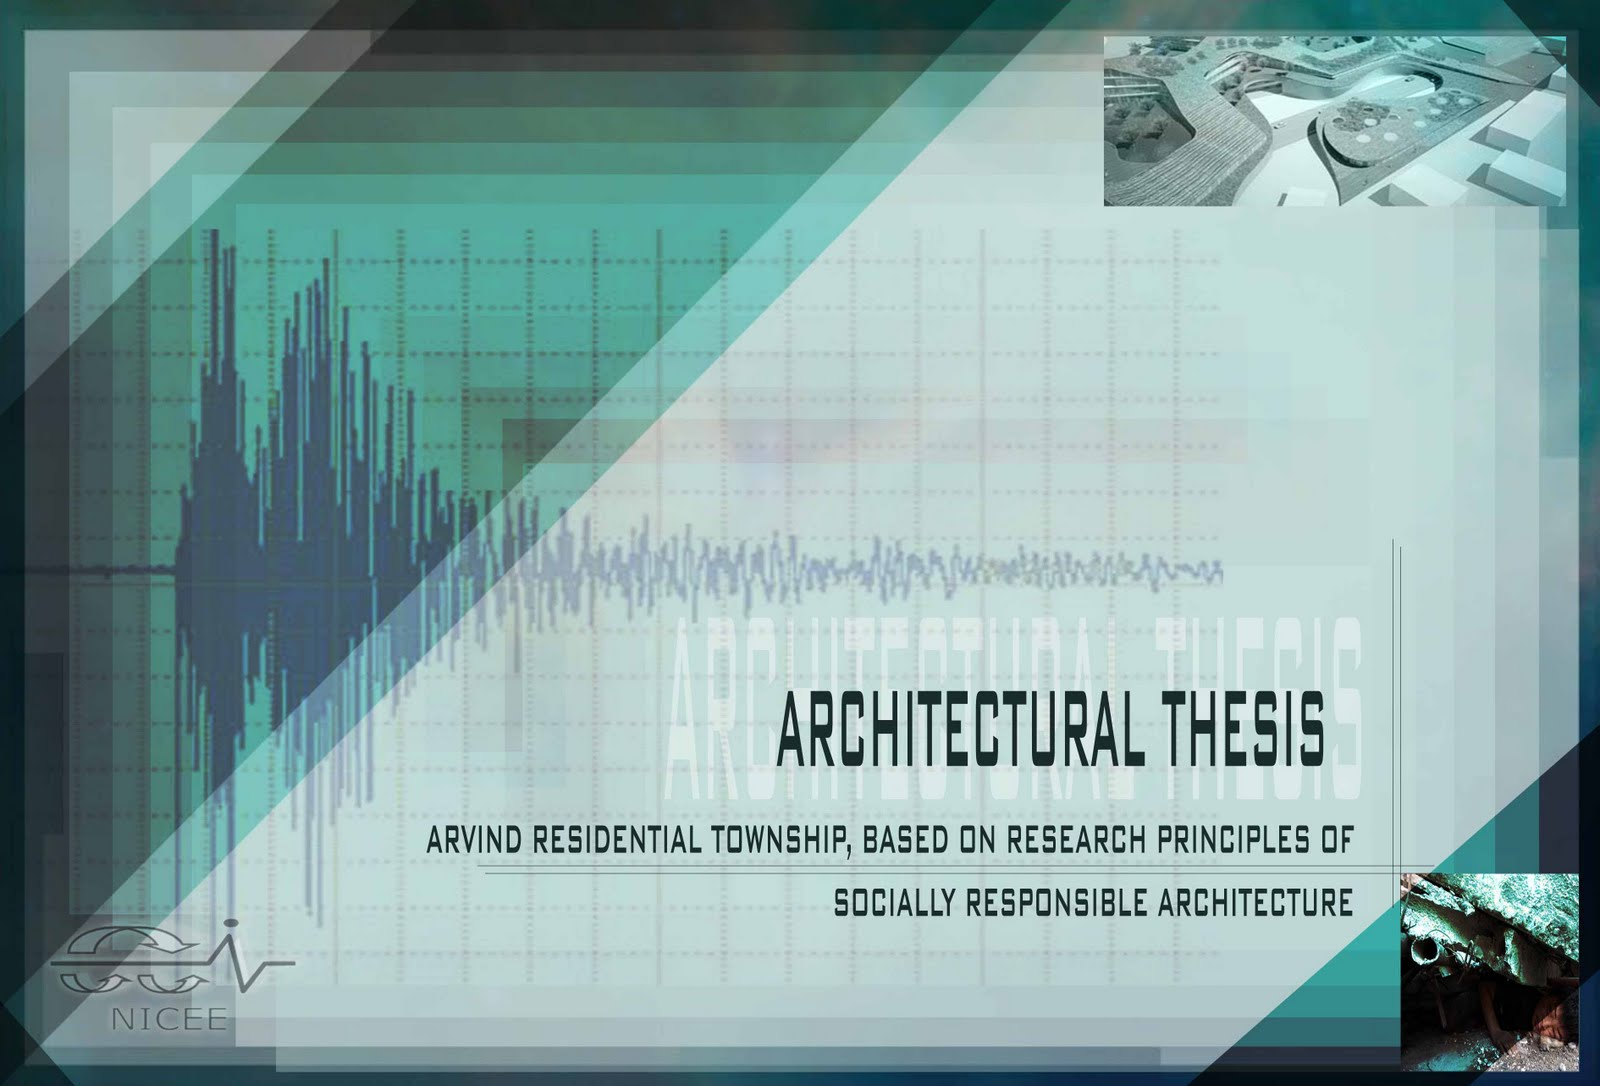 How to Select Undergraduate Architecture Thesis Topic?